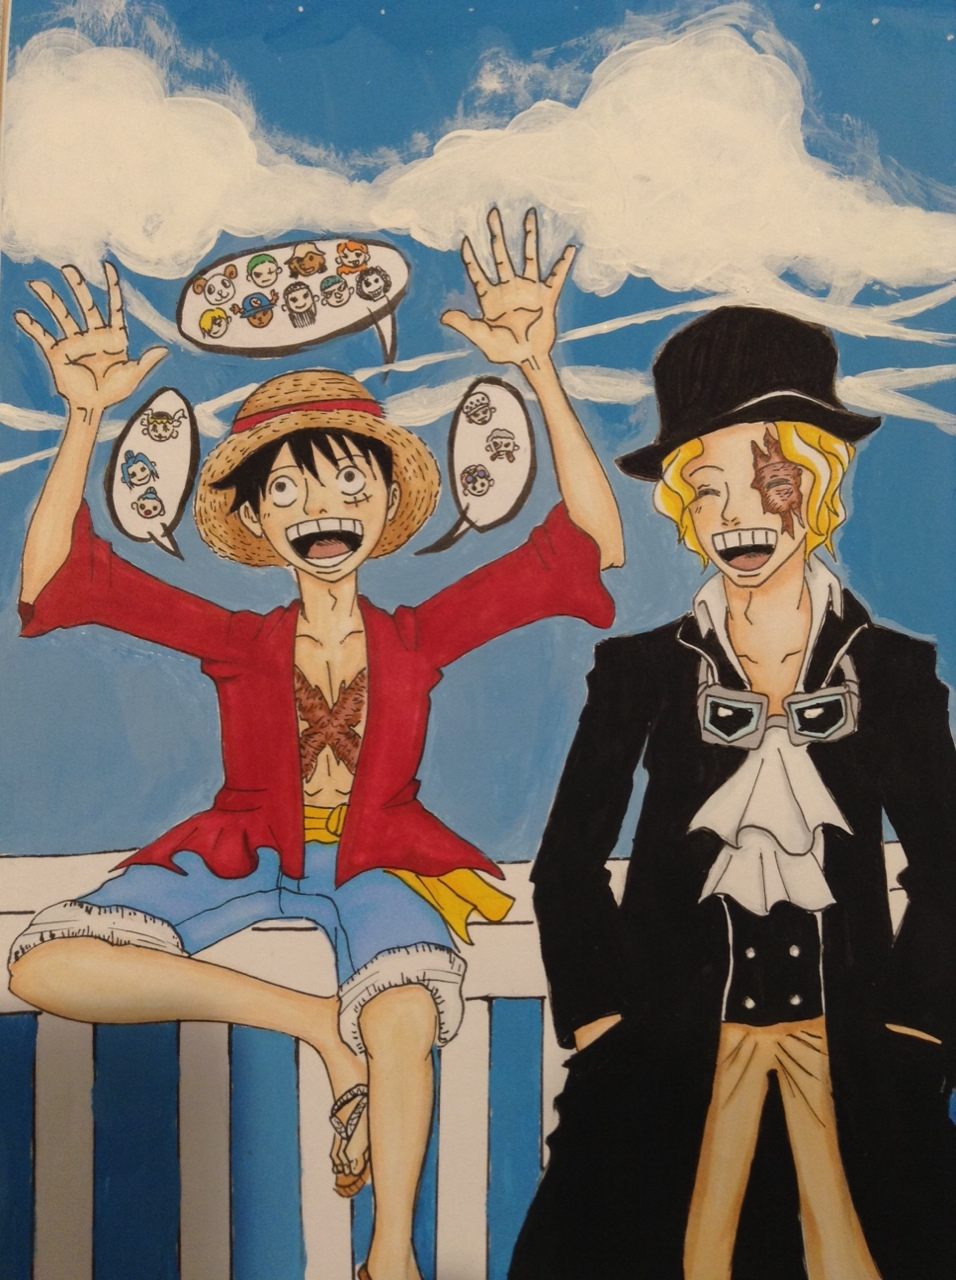 sabo and luffy meet again manga